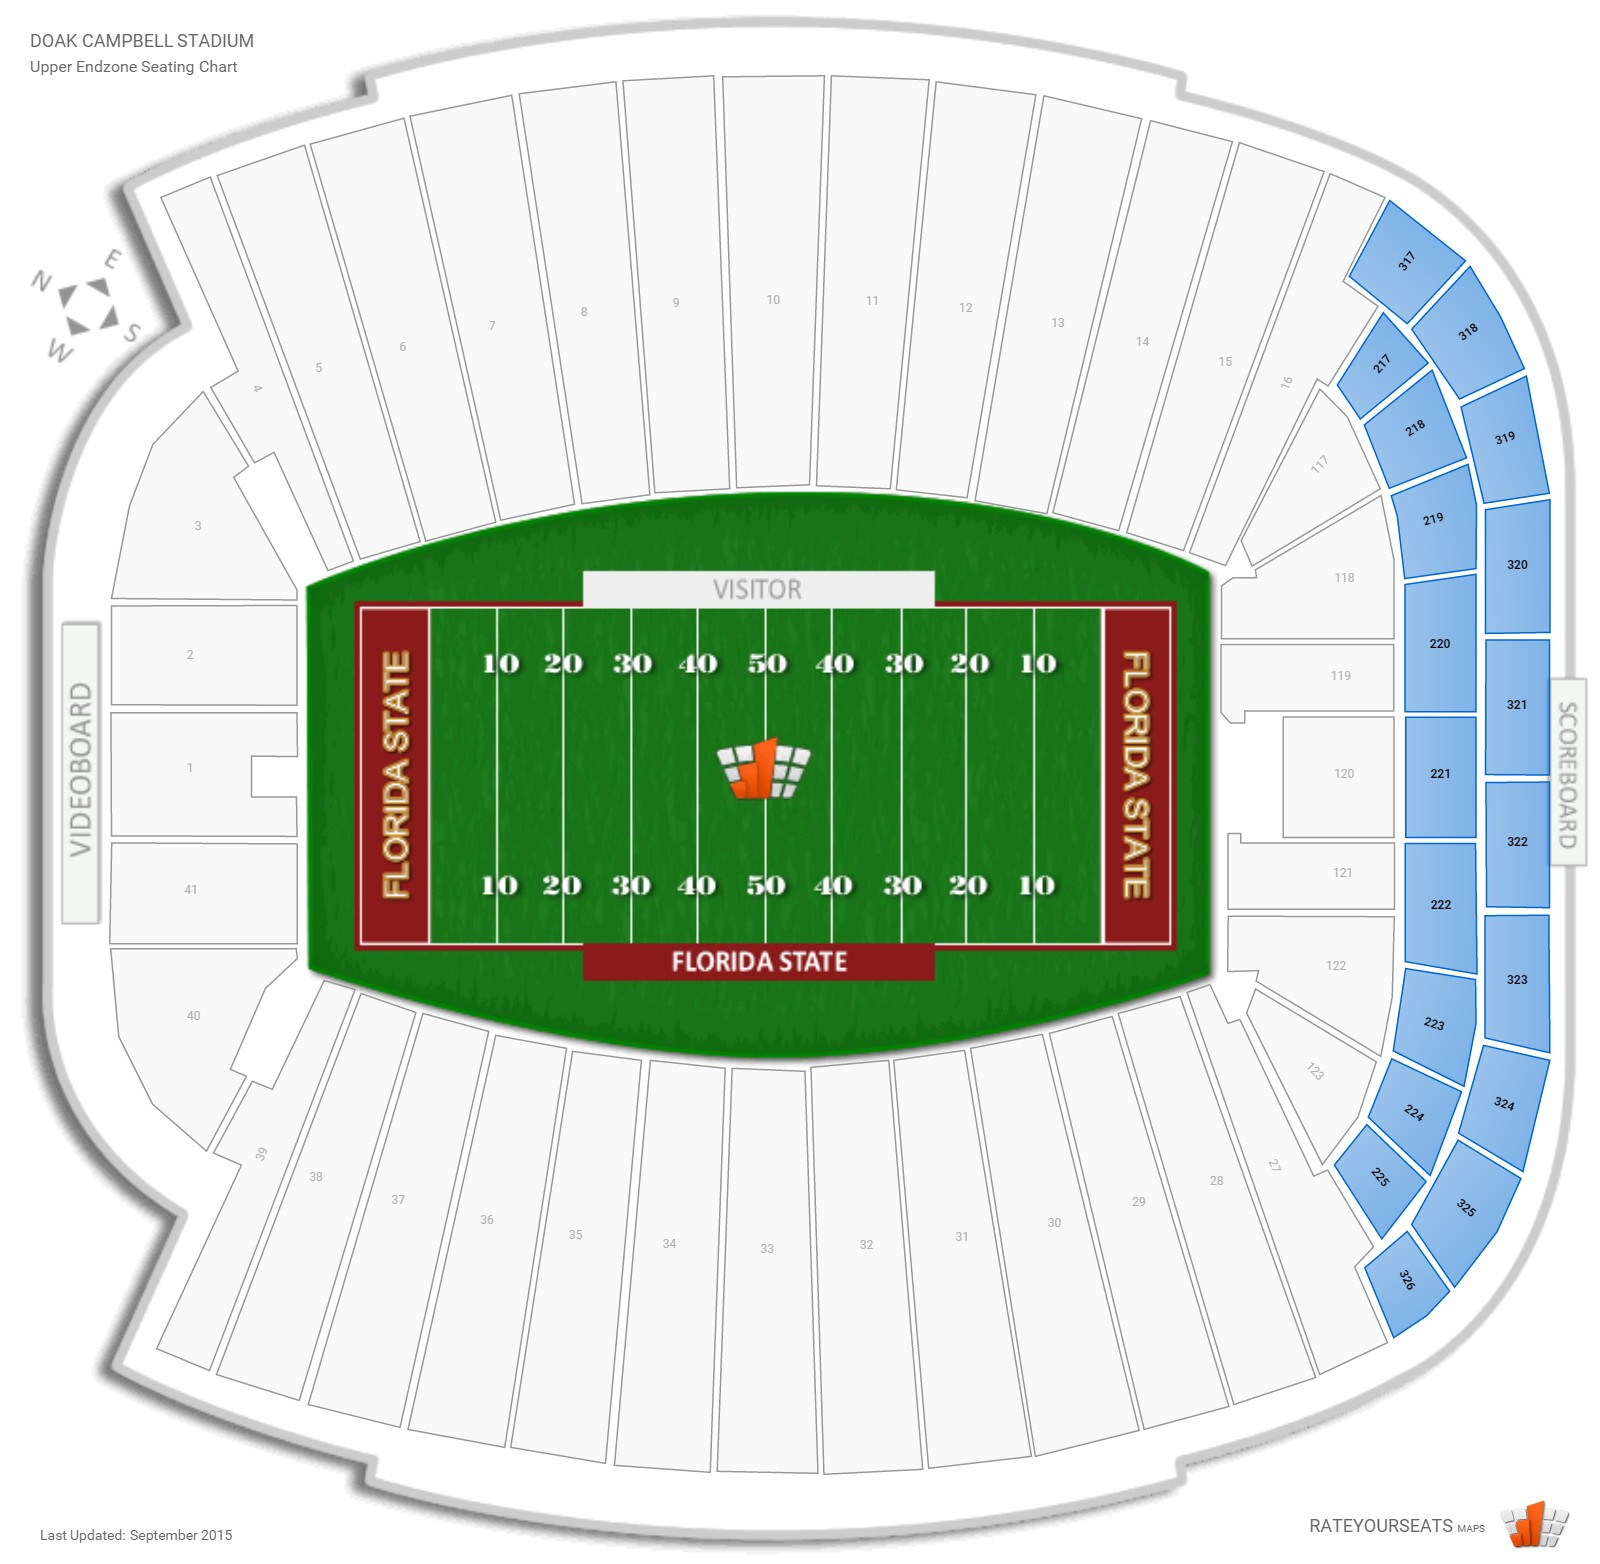 Doak Campbell Stadium Upper Endzone seating chart